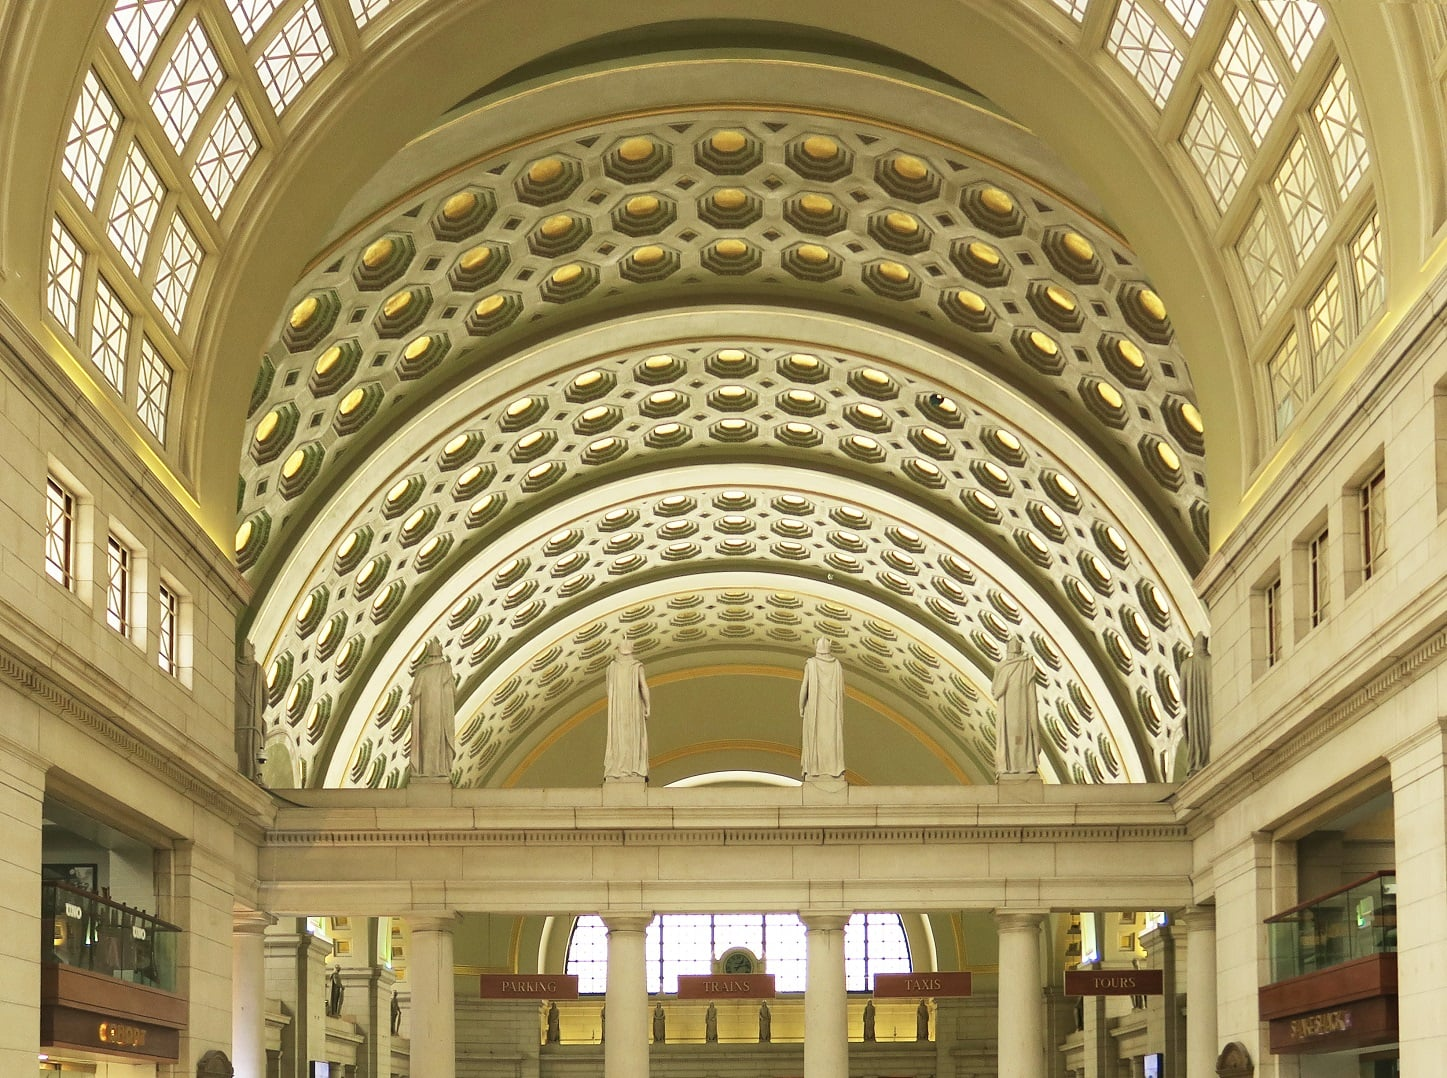 union-Station-Washington-DC-photo-by-Paul-Clemence-8-1